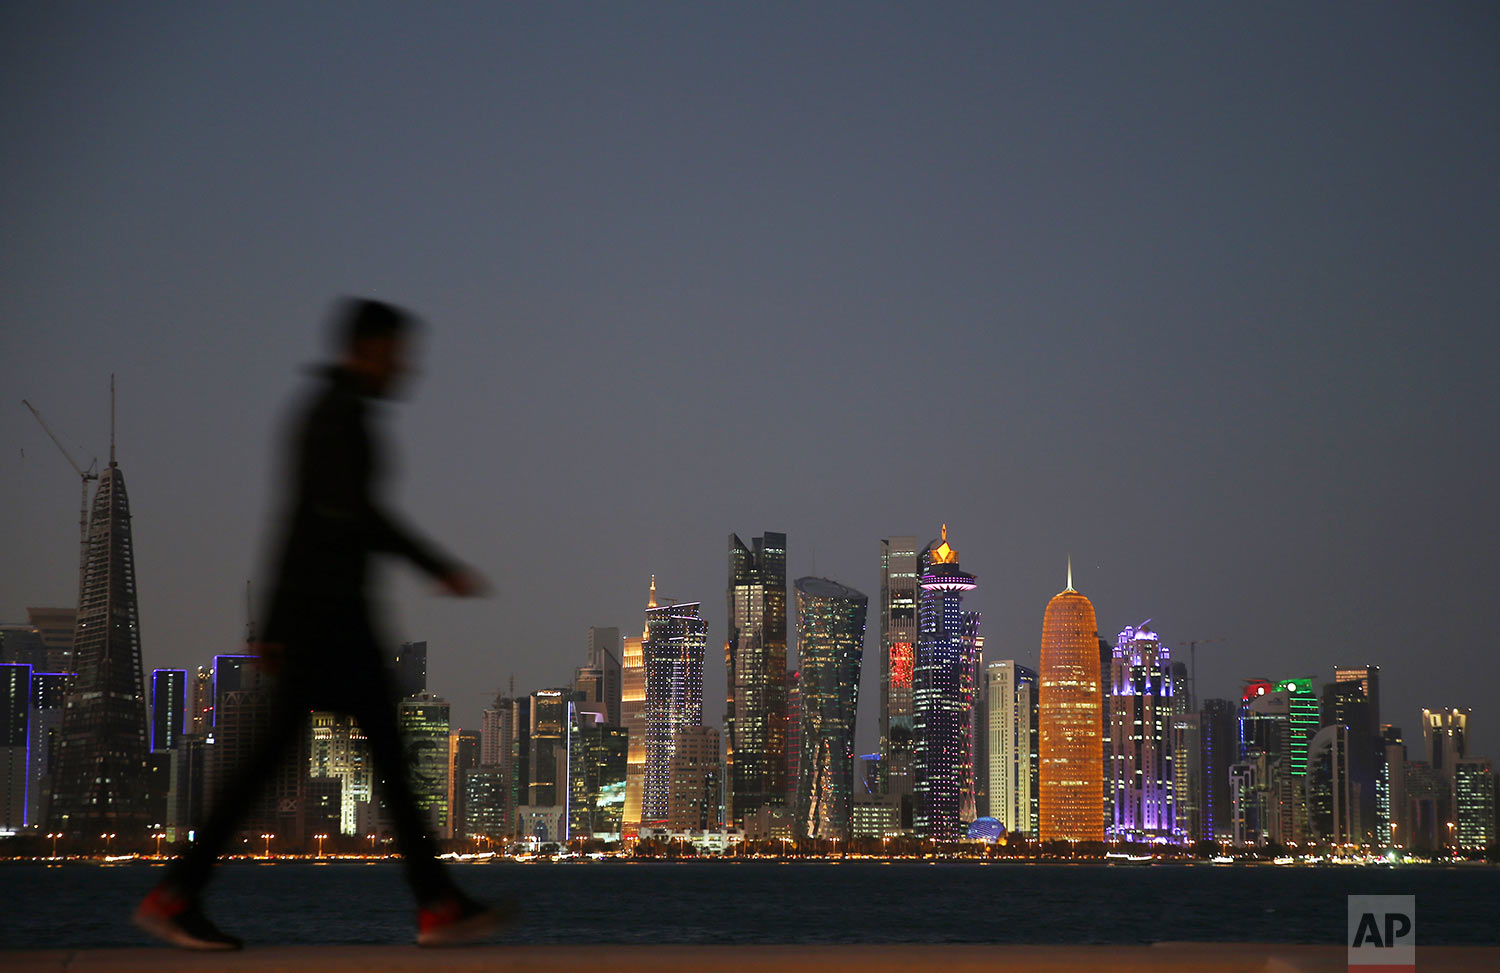 In this Sunday, Feb. 17, 2019 photo, a man passes in front of the city skyline night view in Doha, Qatar. (AP Photo/Kamran Jebreili)